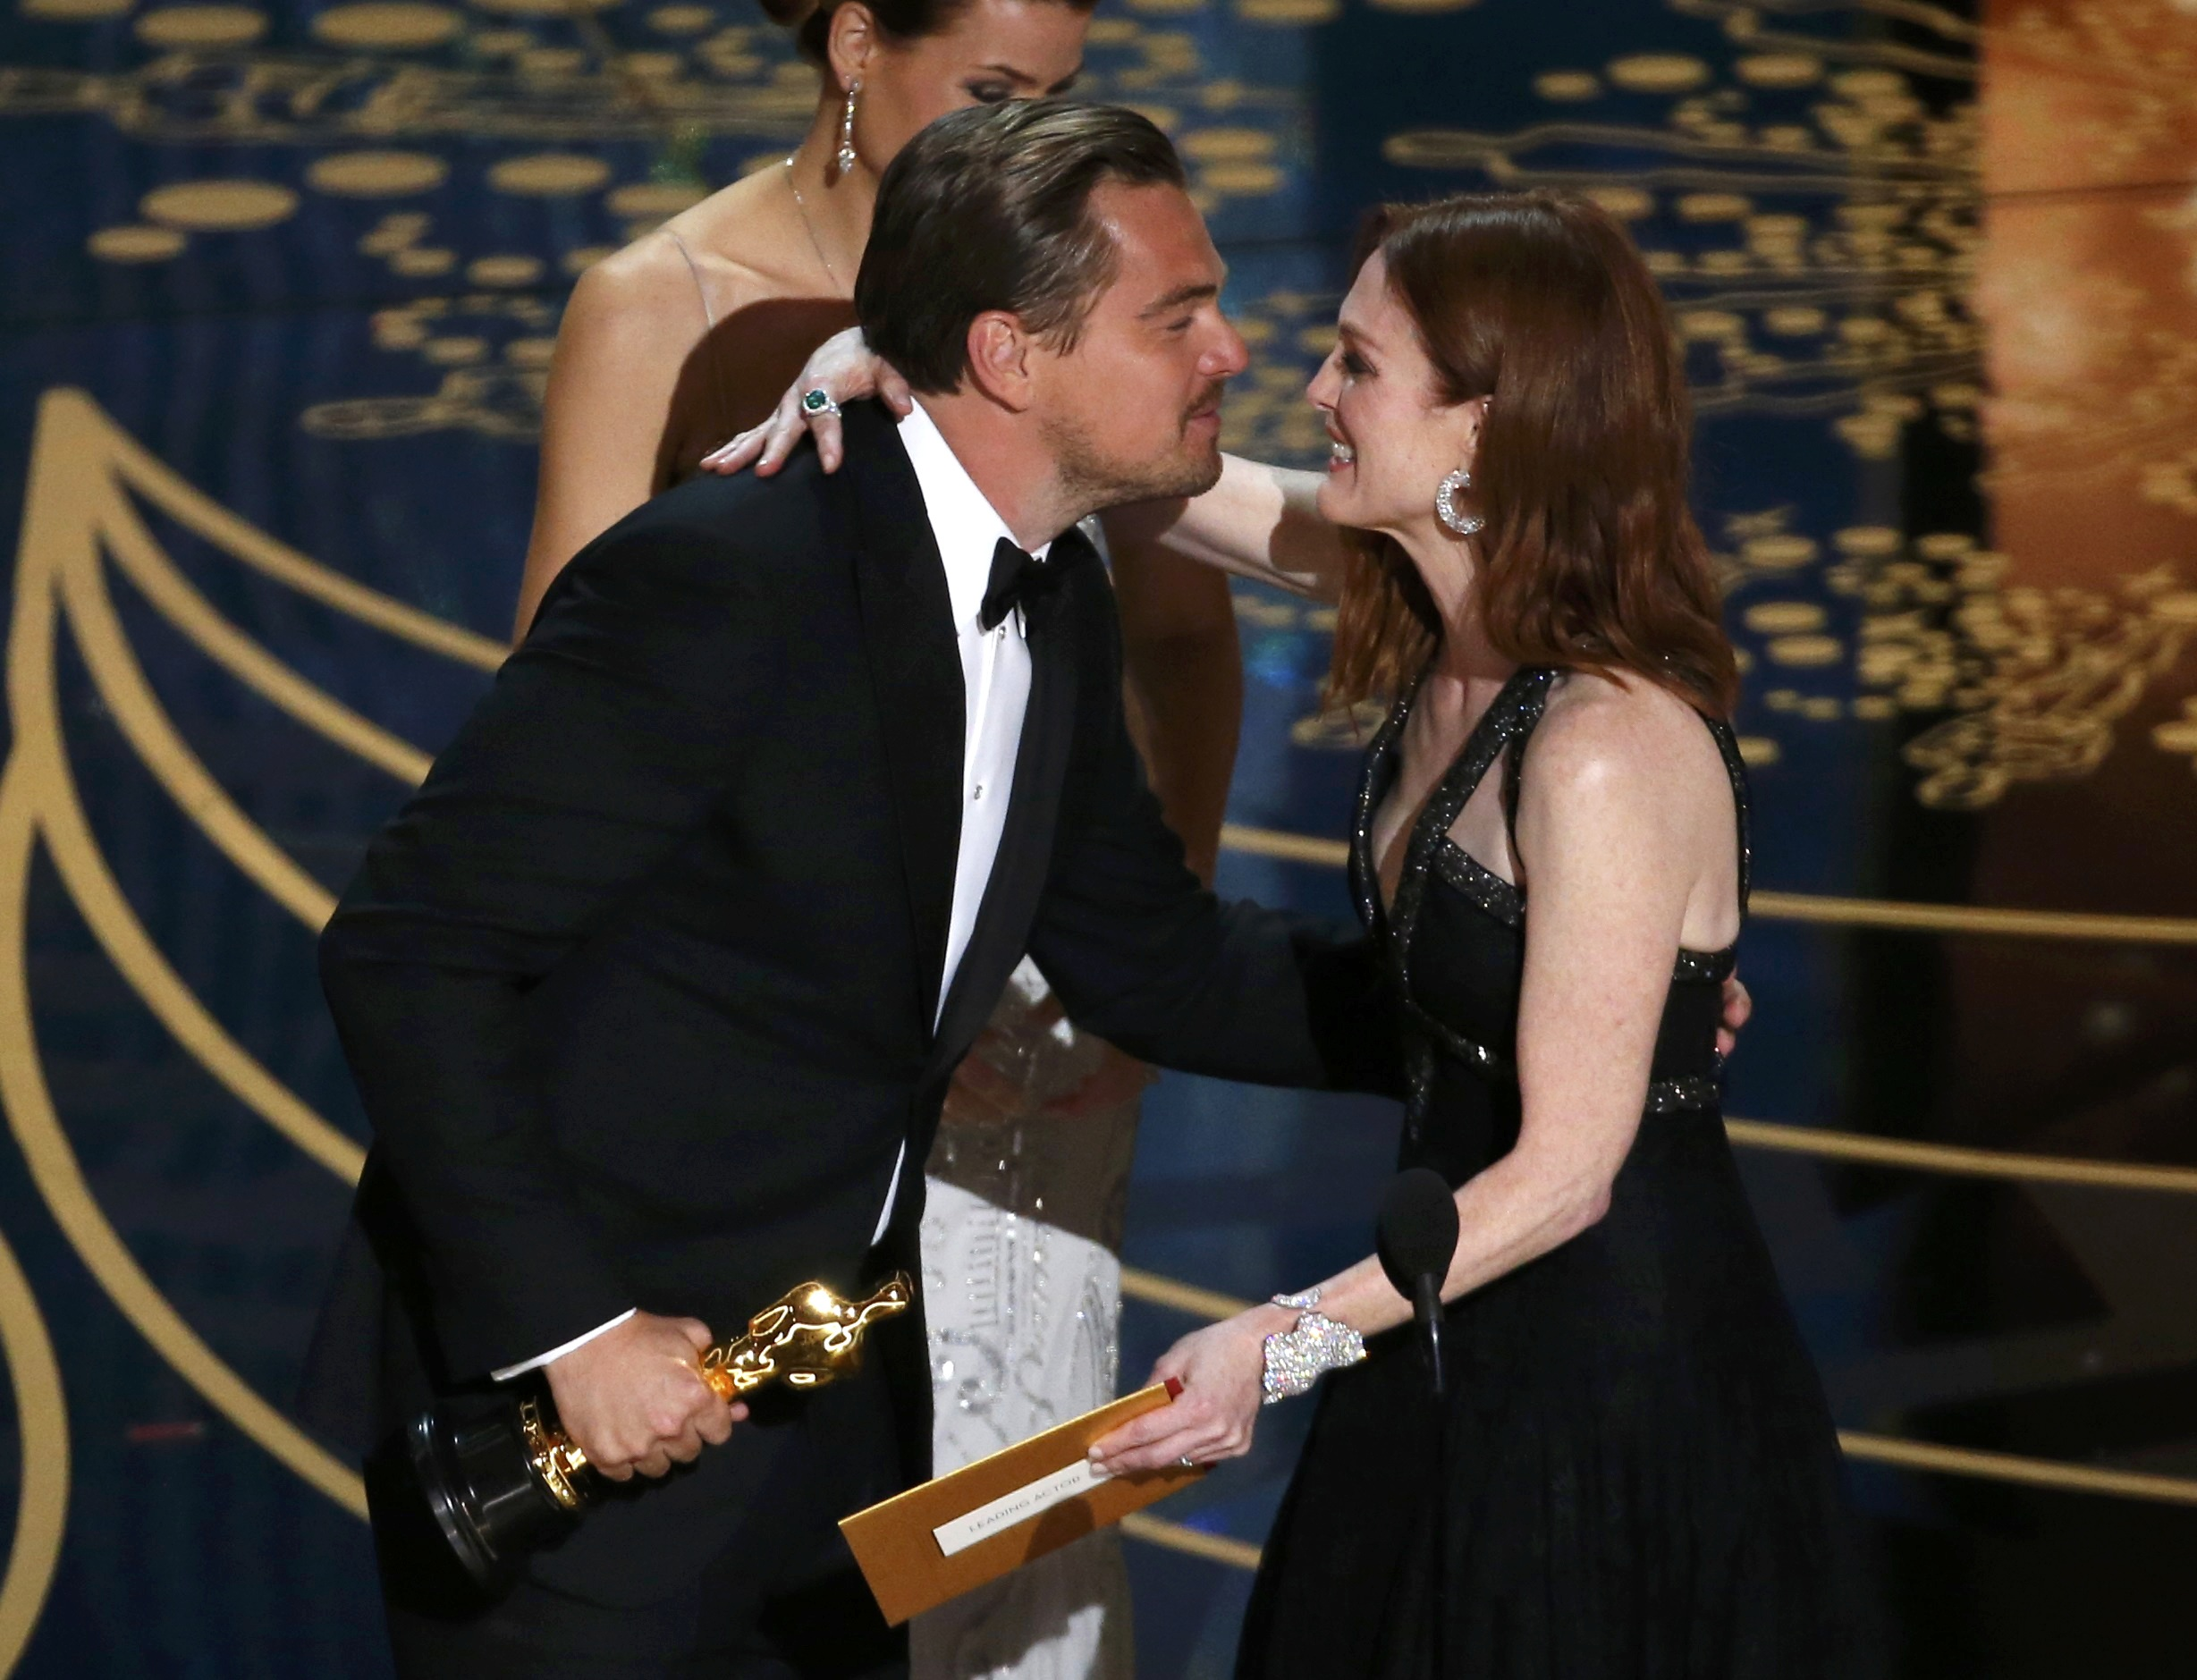 """Leonardo DiCaprio receives the Oscar for Best Actor for the movie """"The Revanant""""  from Julianne Moore at the 88th Academy Awards in Hollywood, California February 28, 2016.   REUTERS/Mario Anzuoni"""